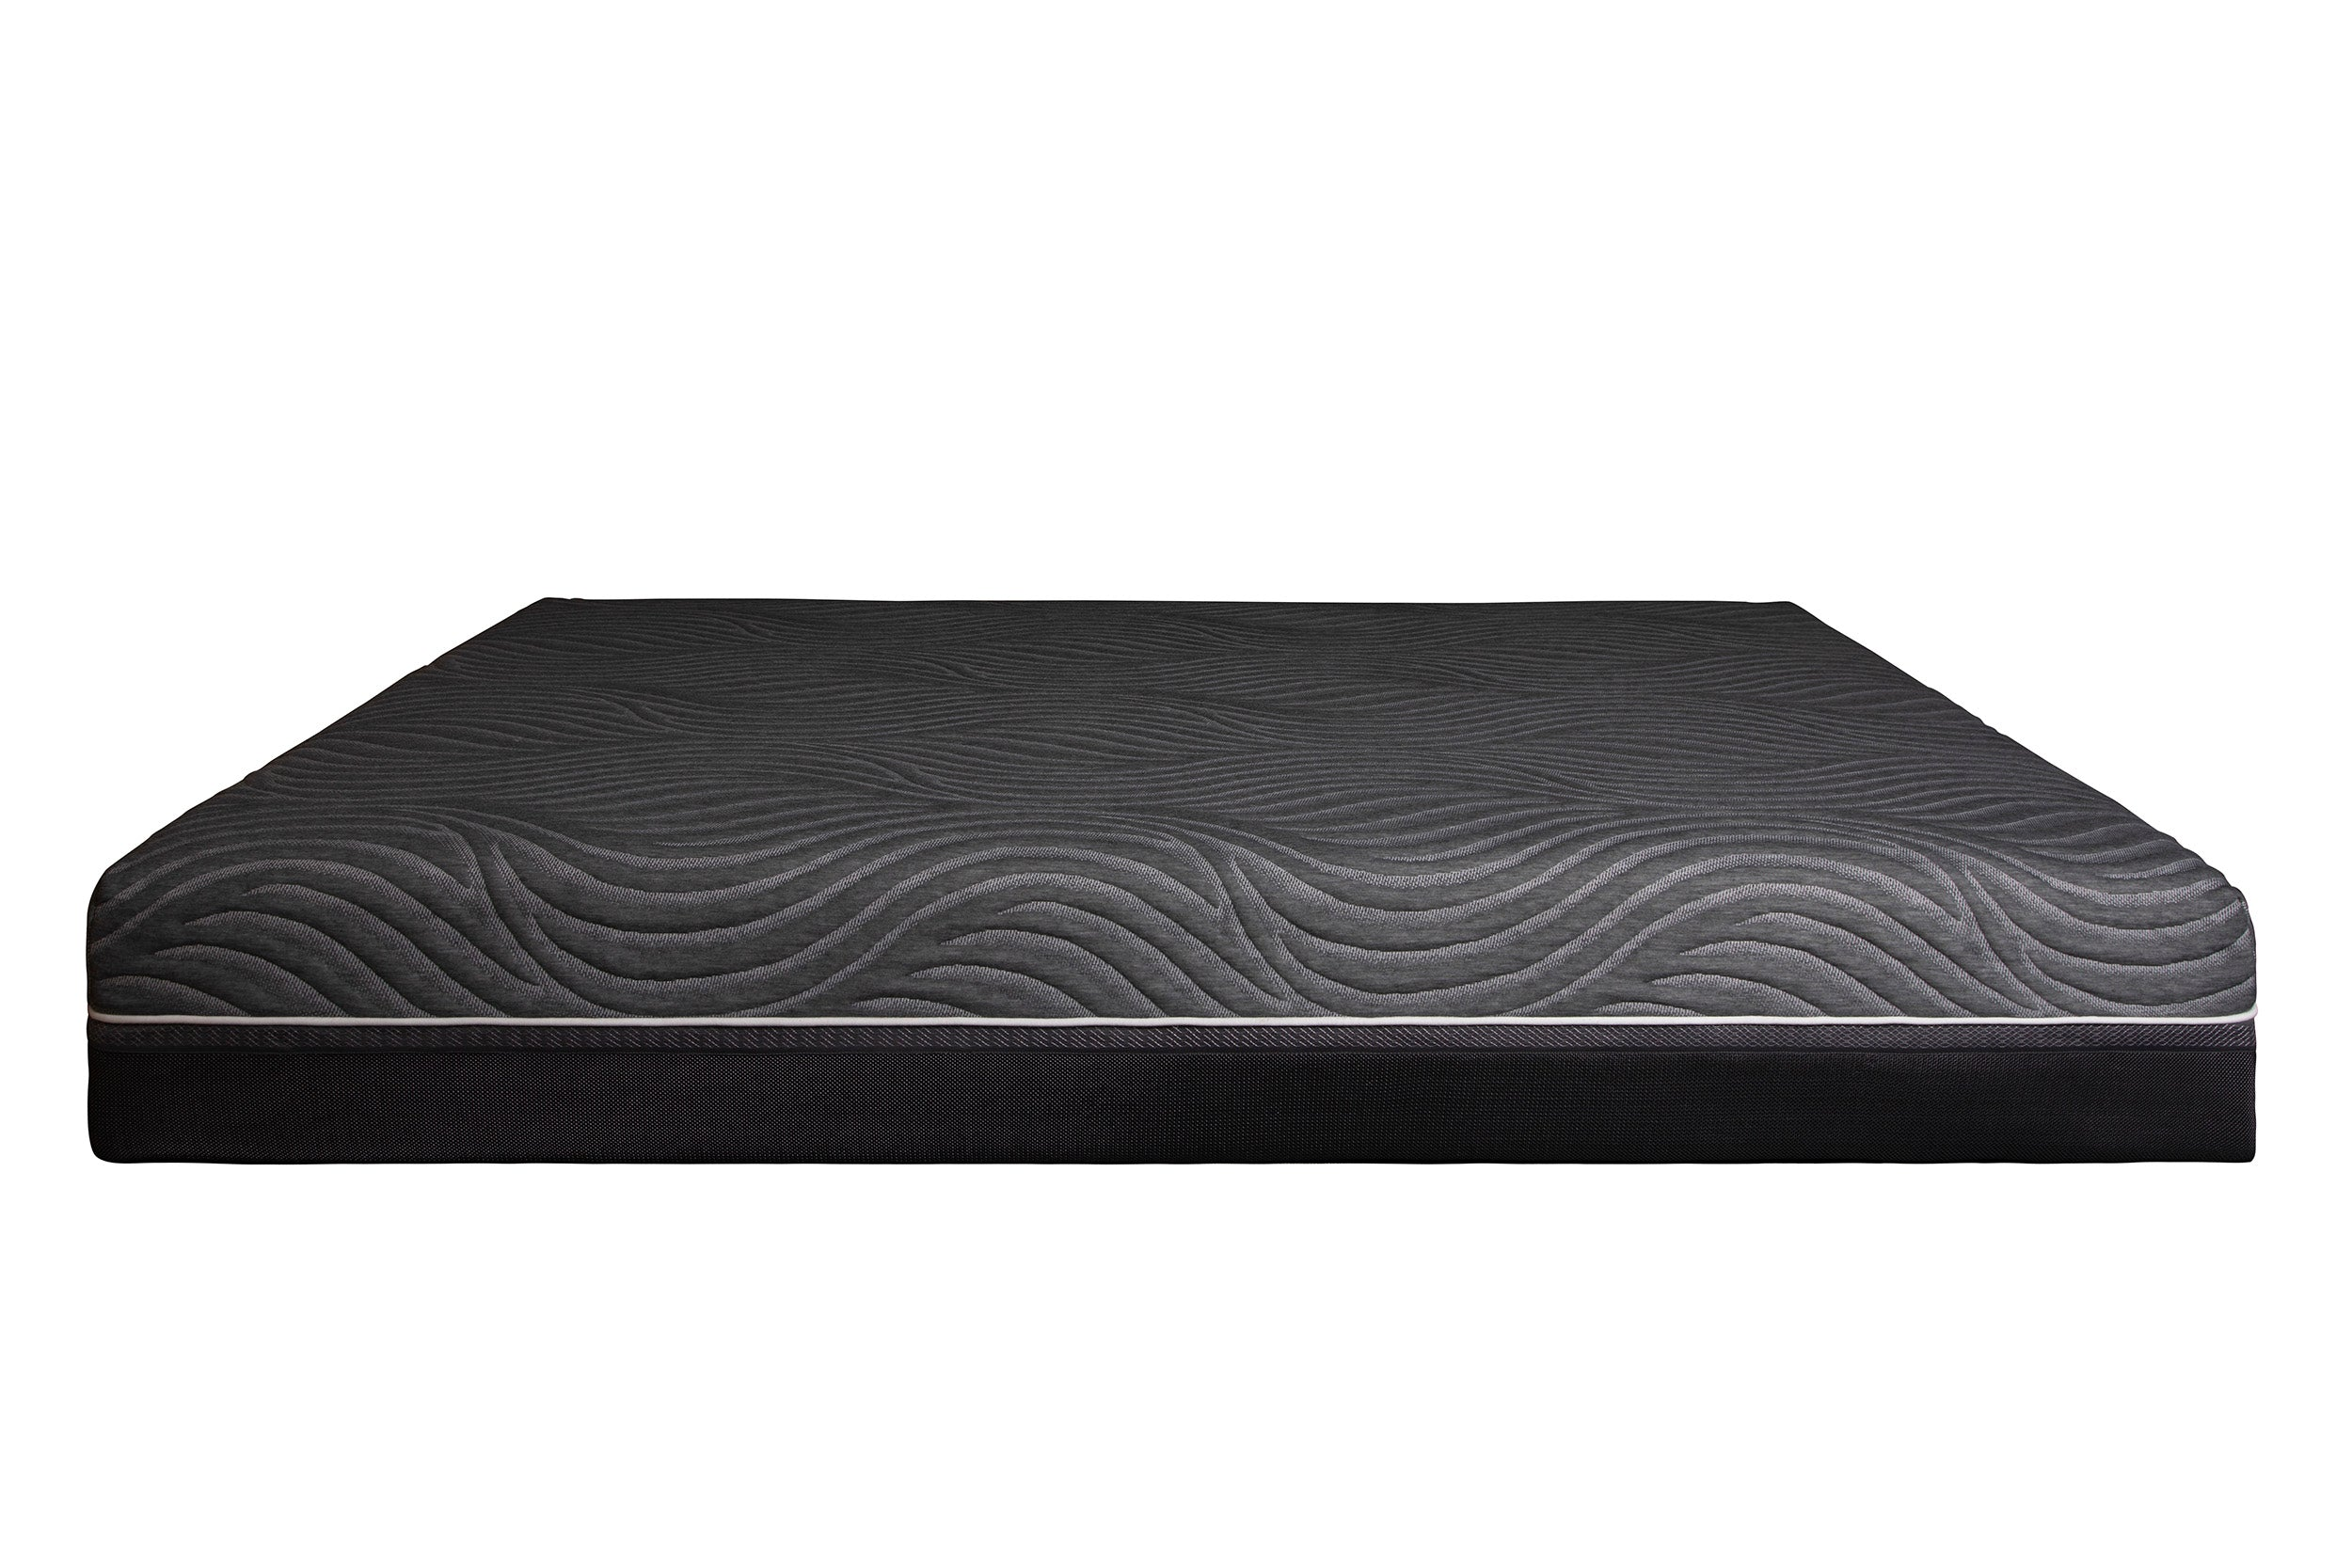 Serenity 12 Inch Pocket Coil Foam Encased Ventilated Gel Infused Memory Foam Mattress